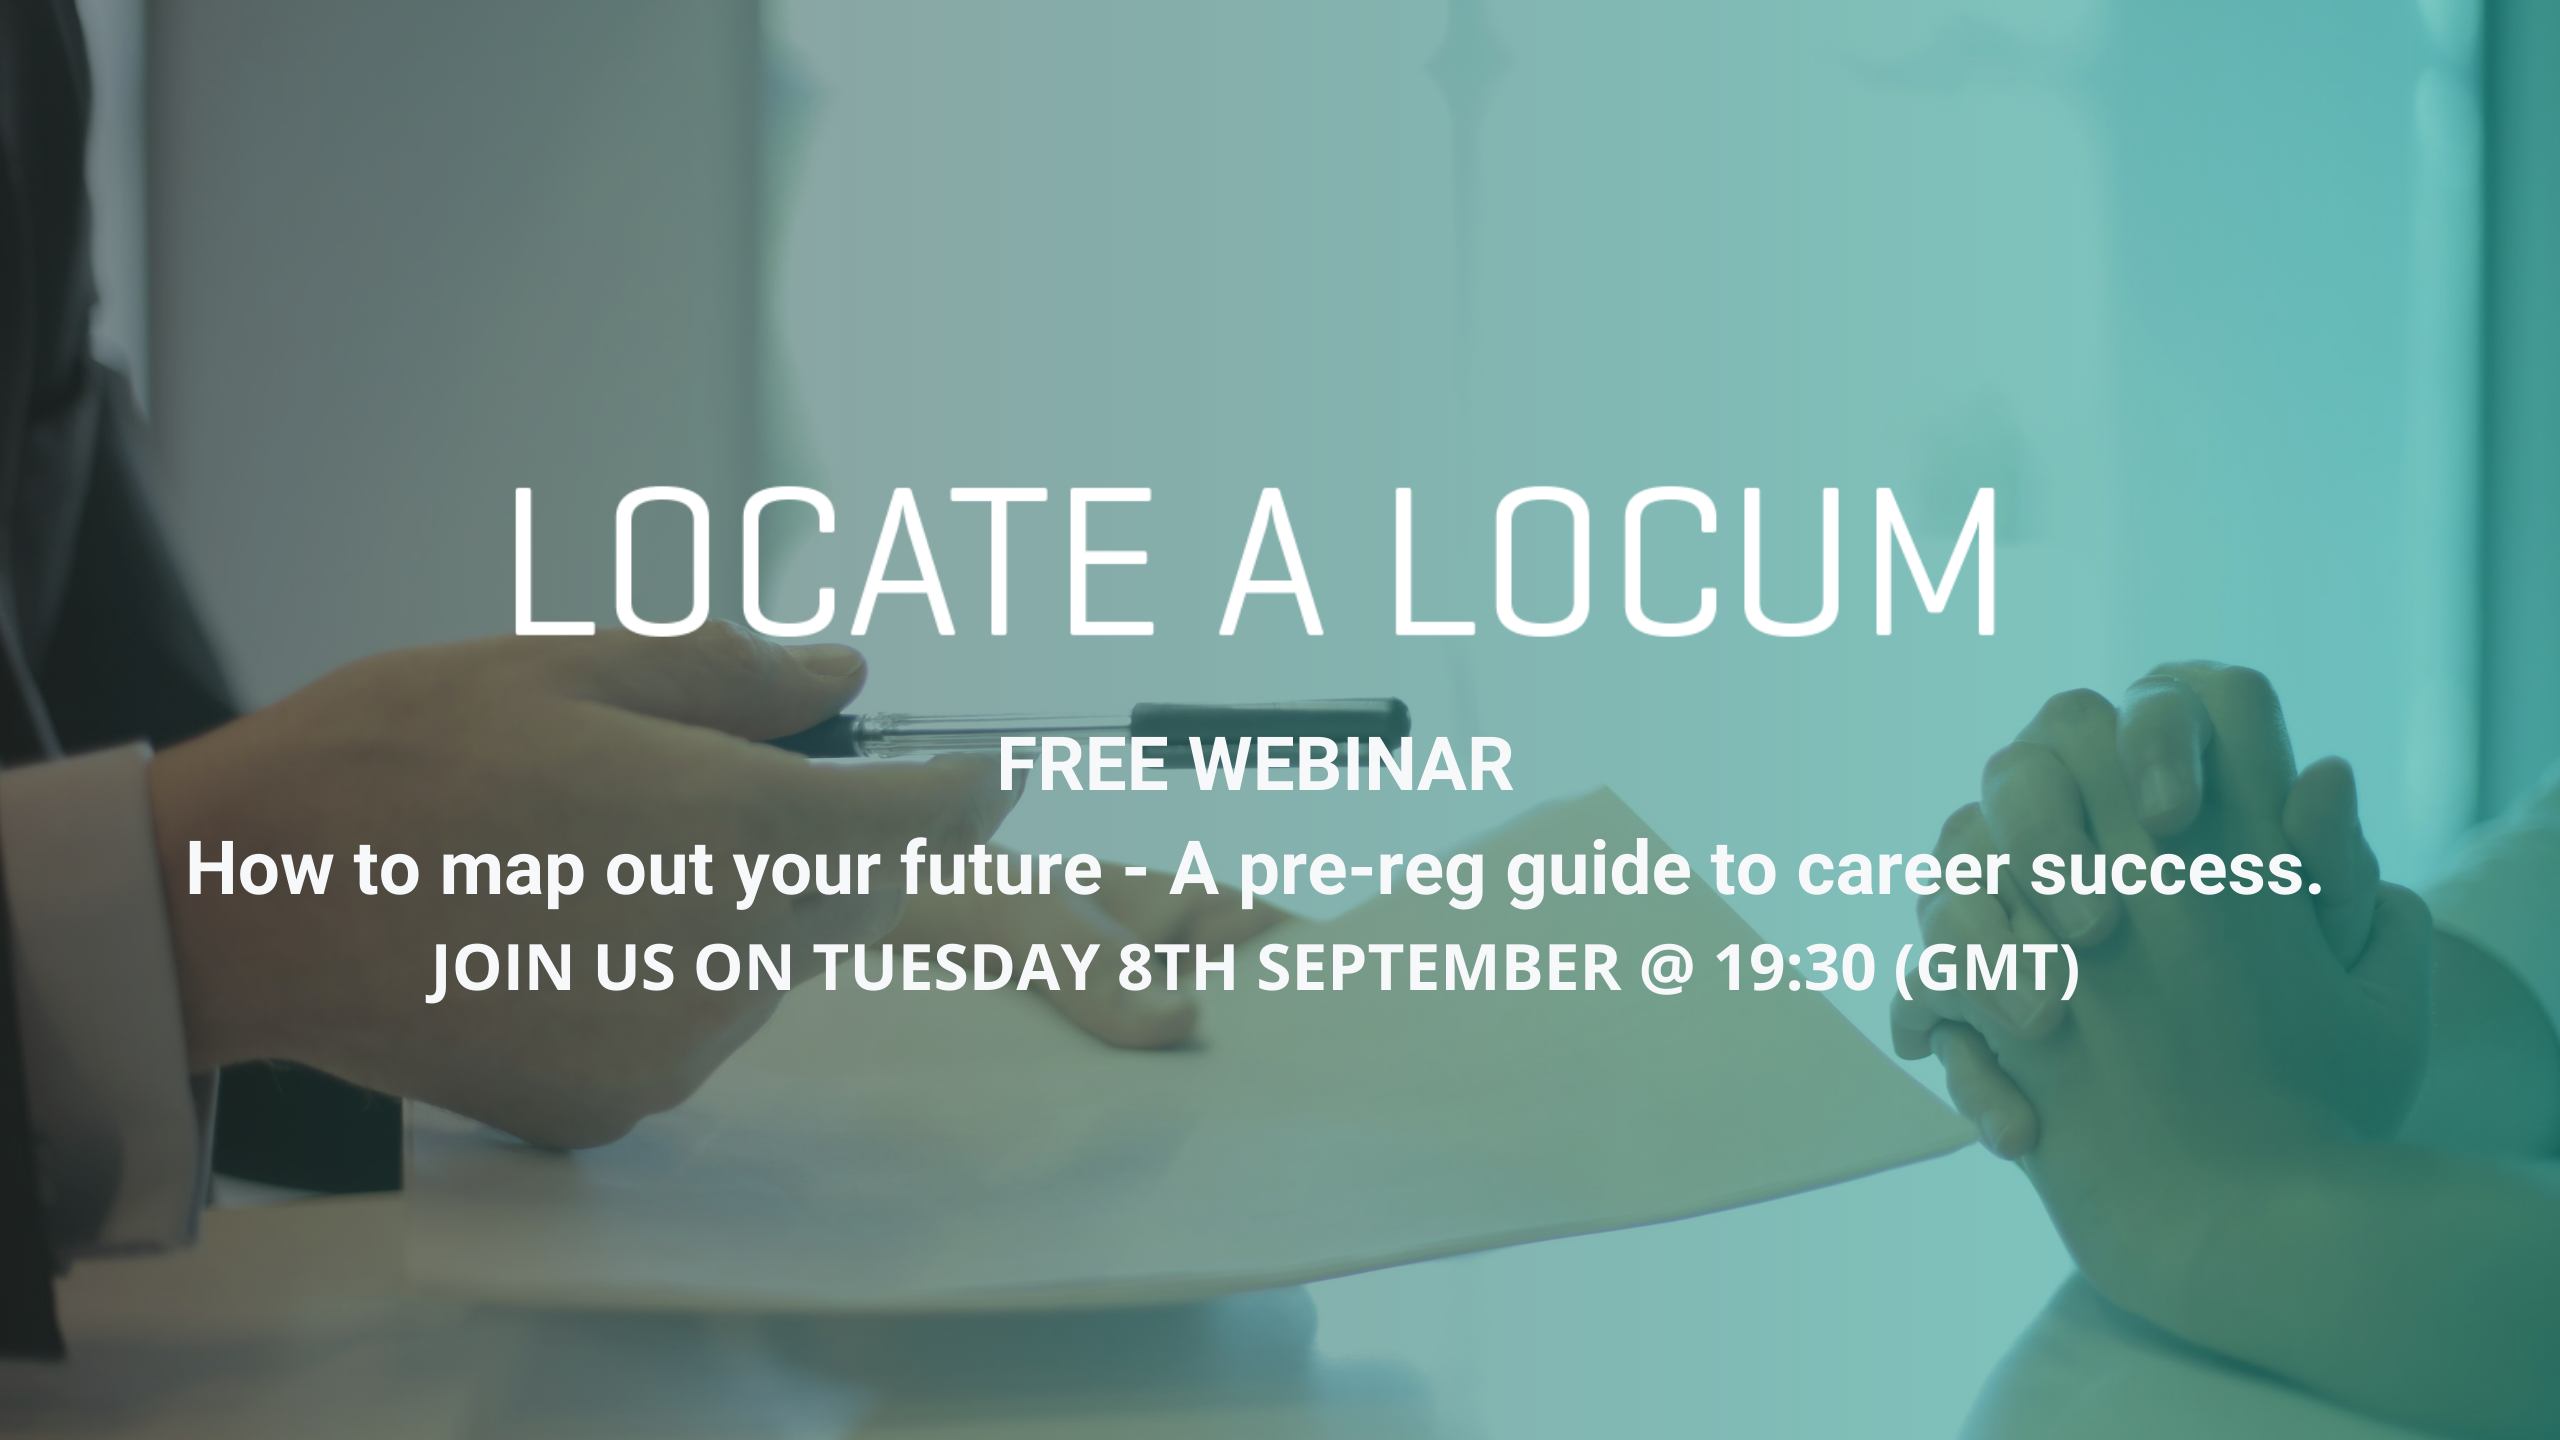 free-webinar-how-to-map-out-your-future-a-pre-reg-guide-to-career-success